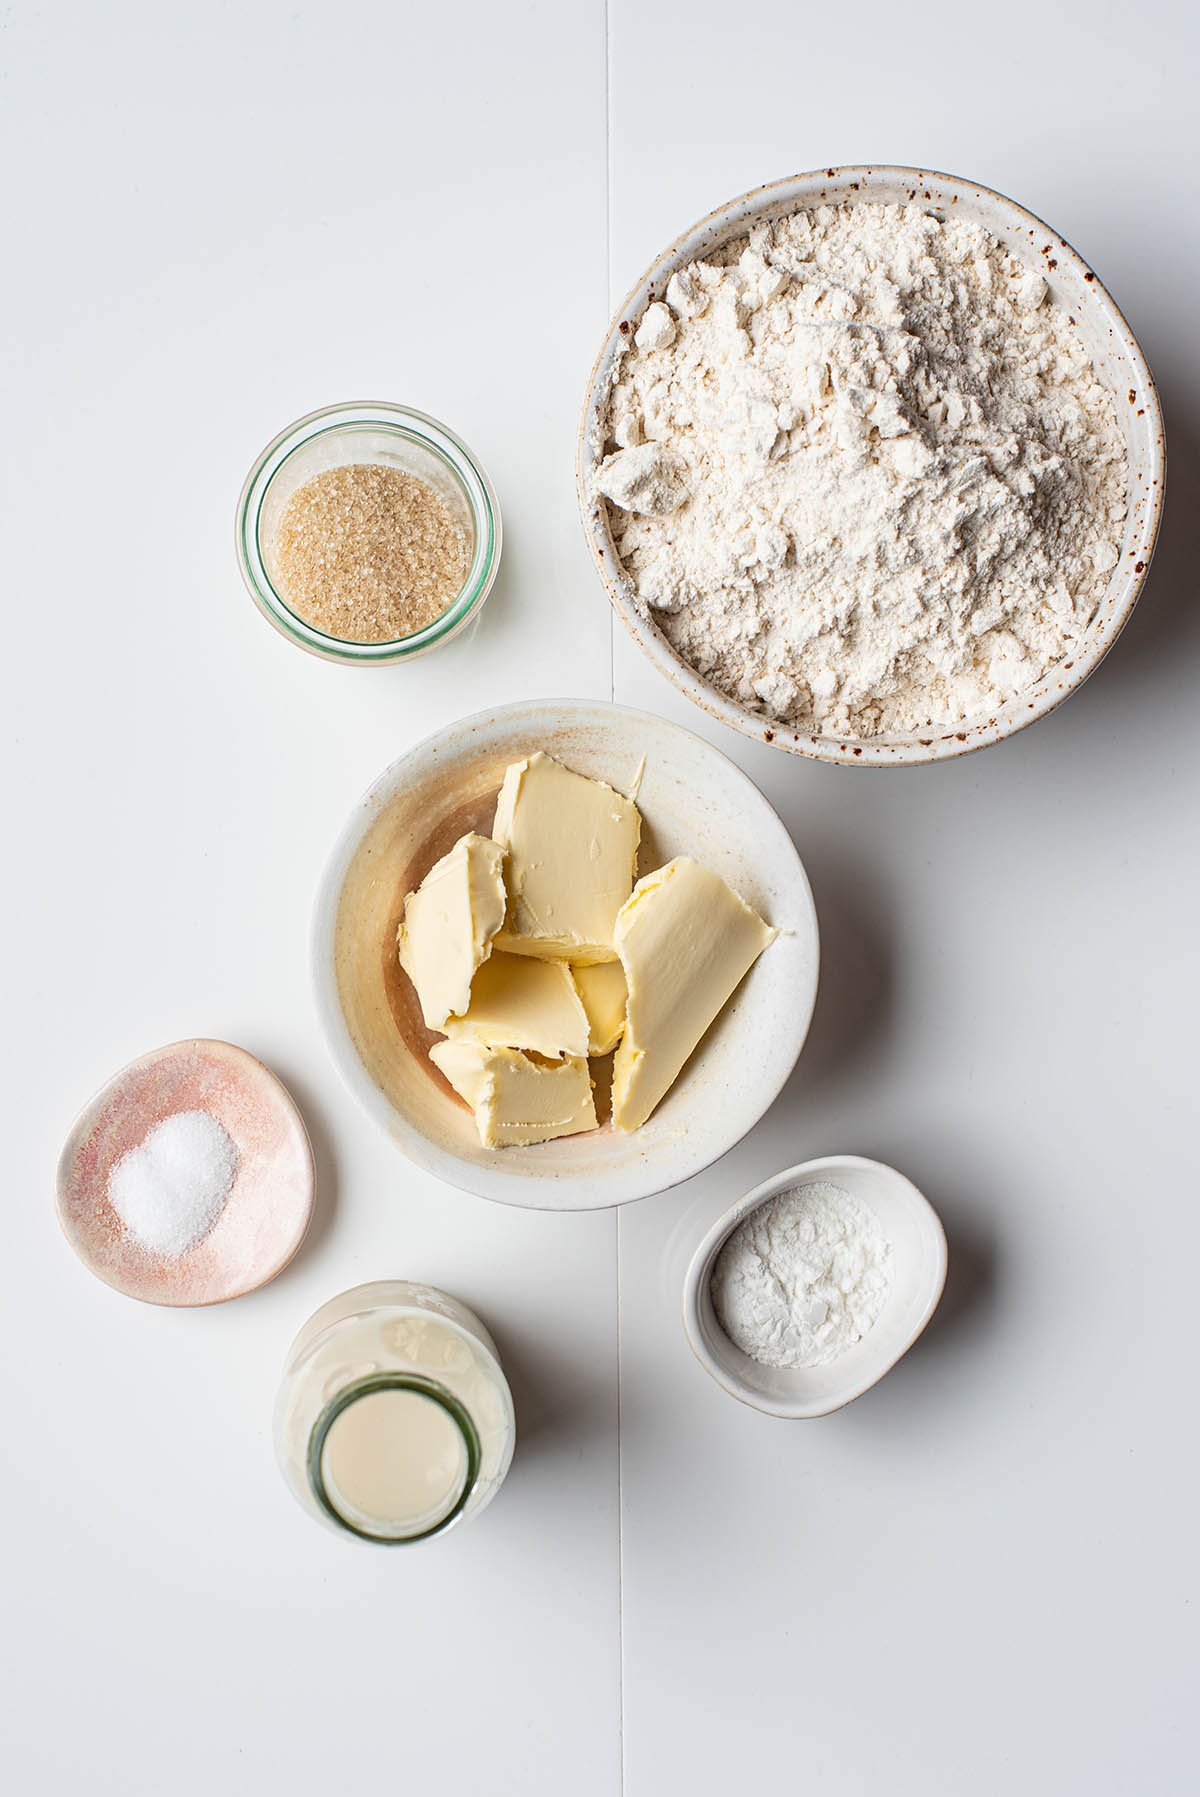 Vegan scone ingredients.